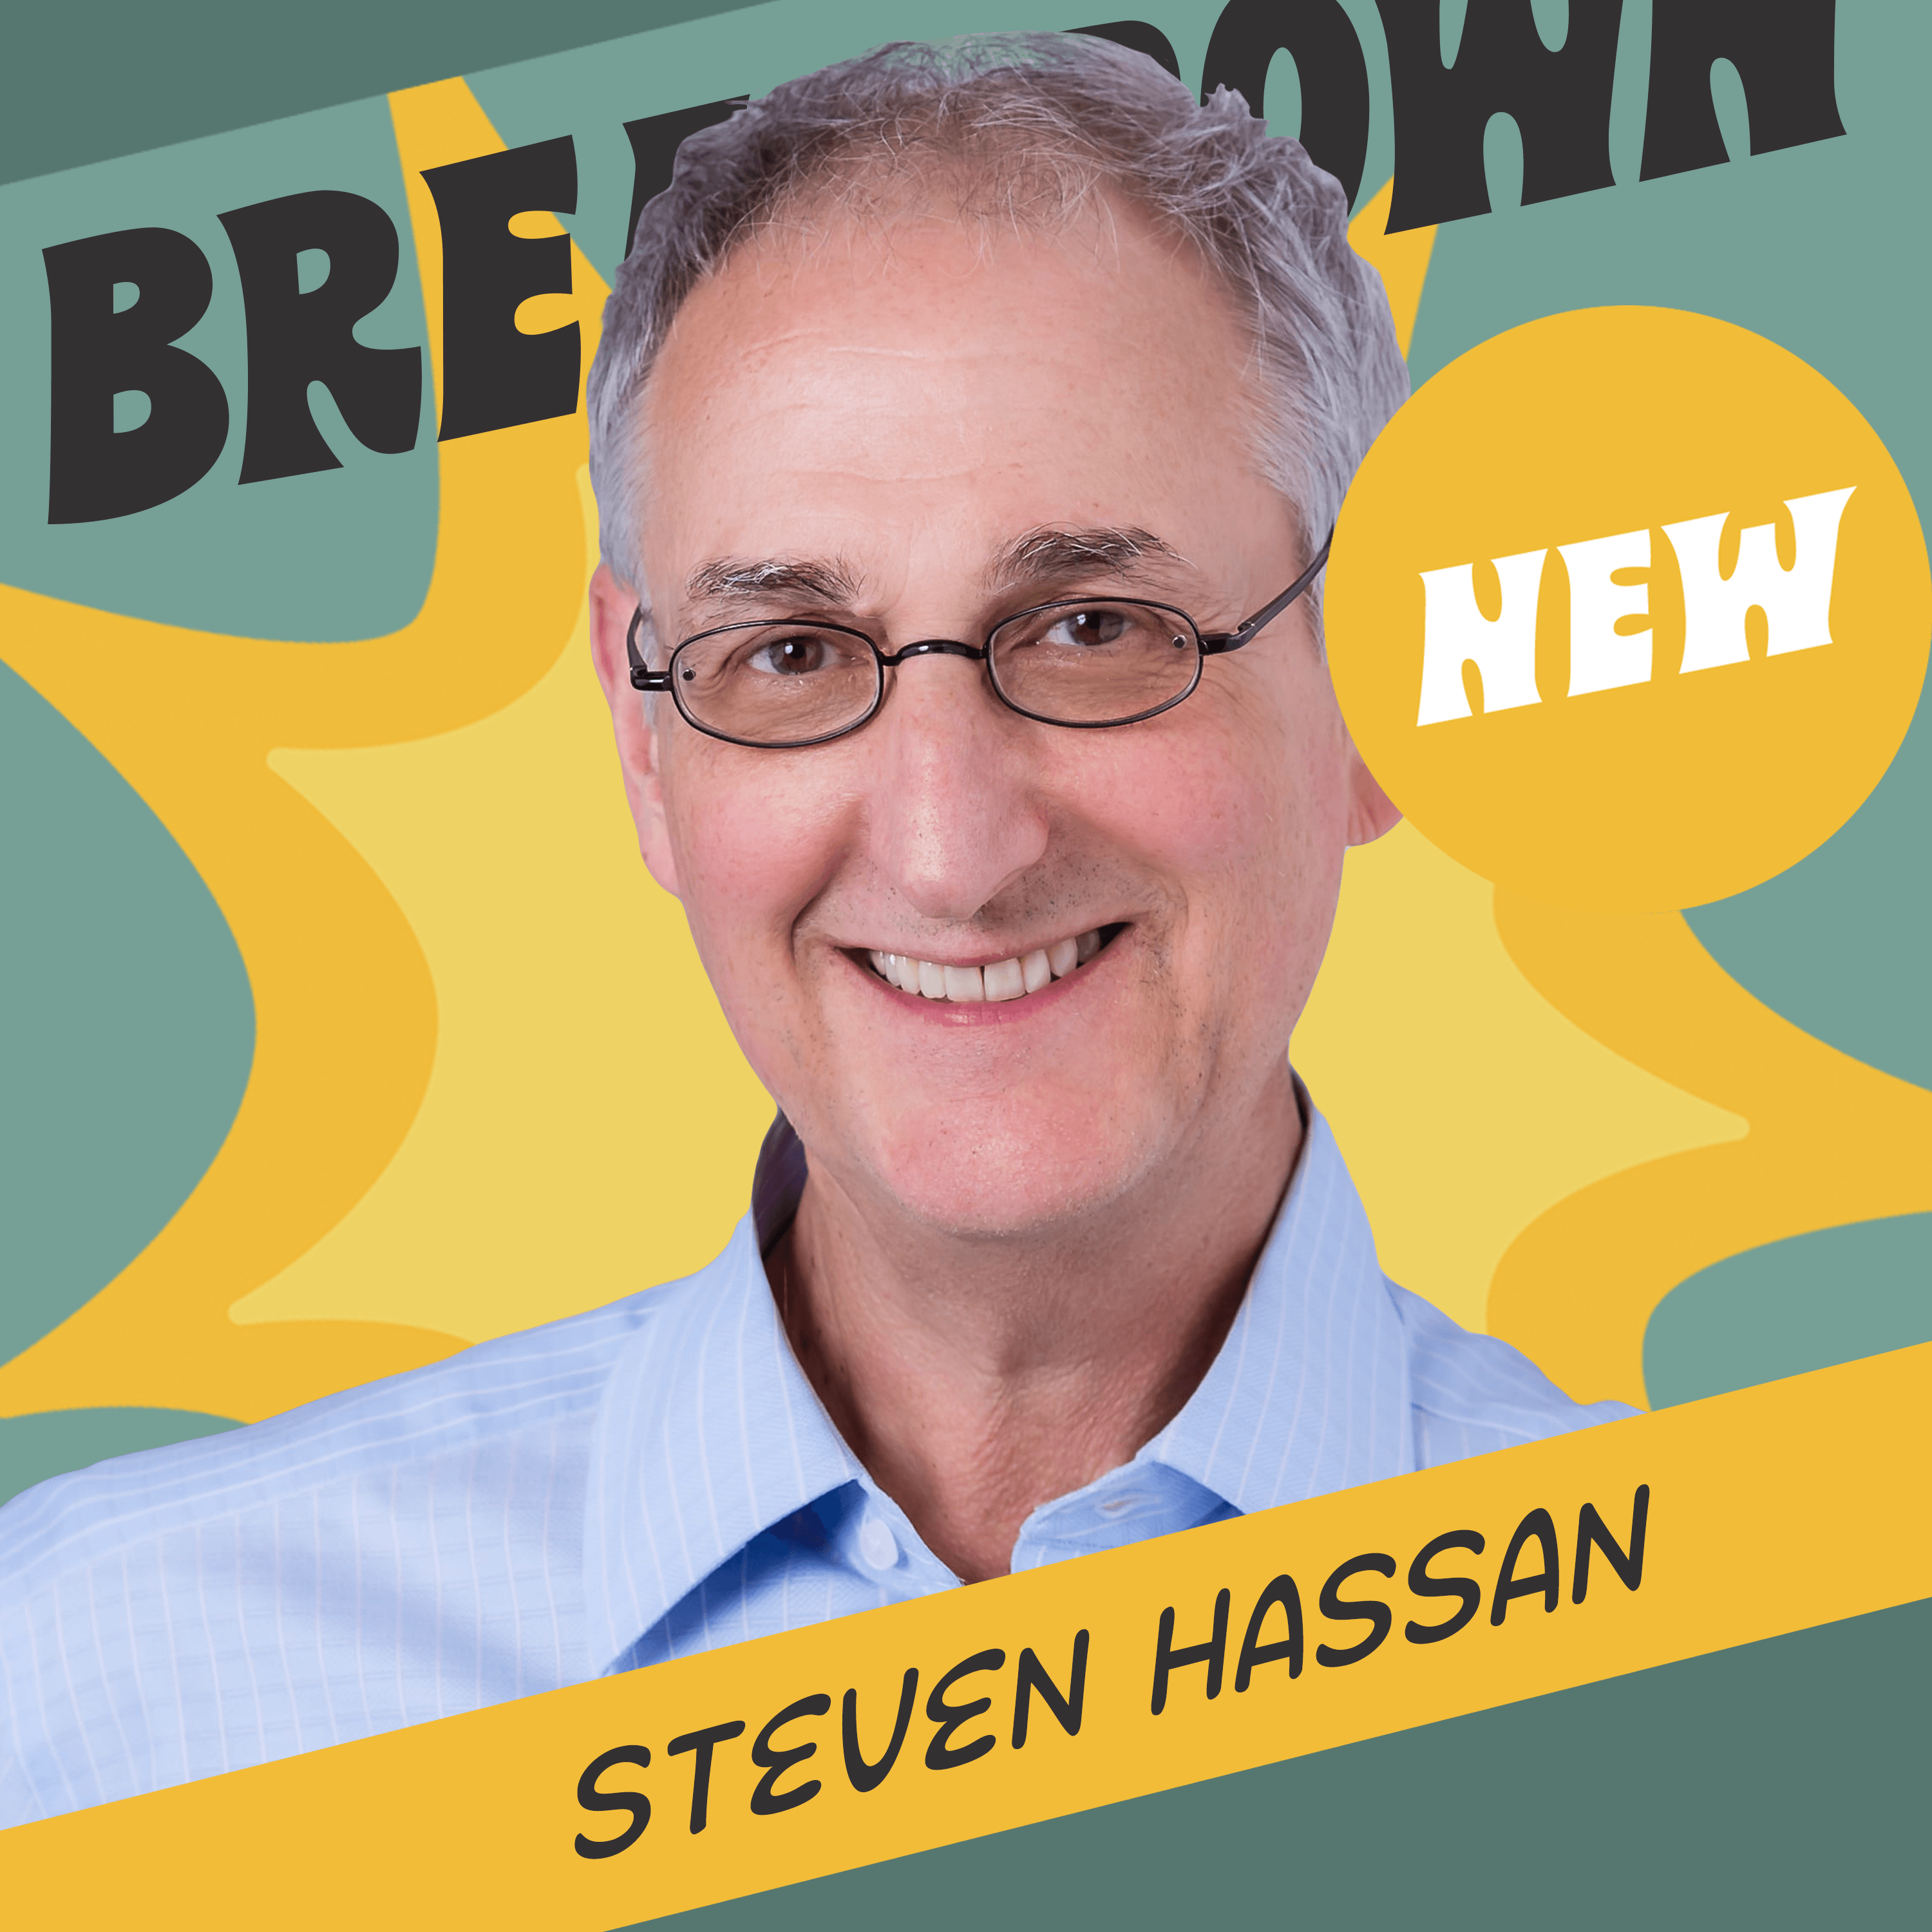 Steve Hassan: Spotting a Cult, Hidden Hypnotism & Indoctrination in the Digital Age